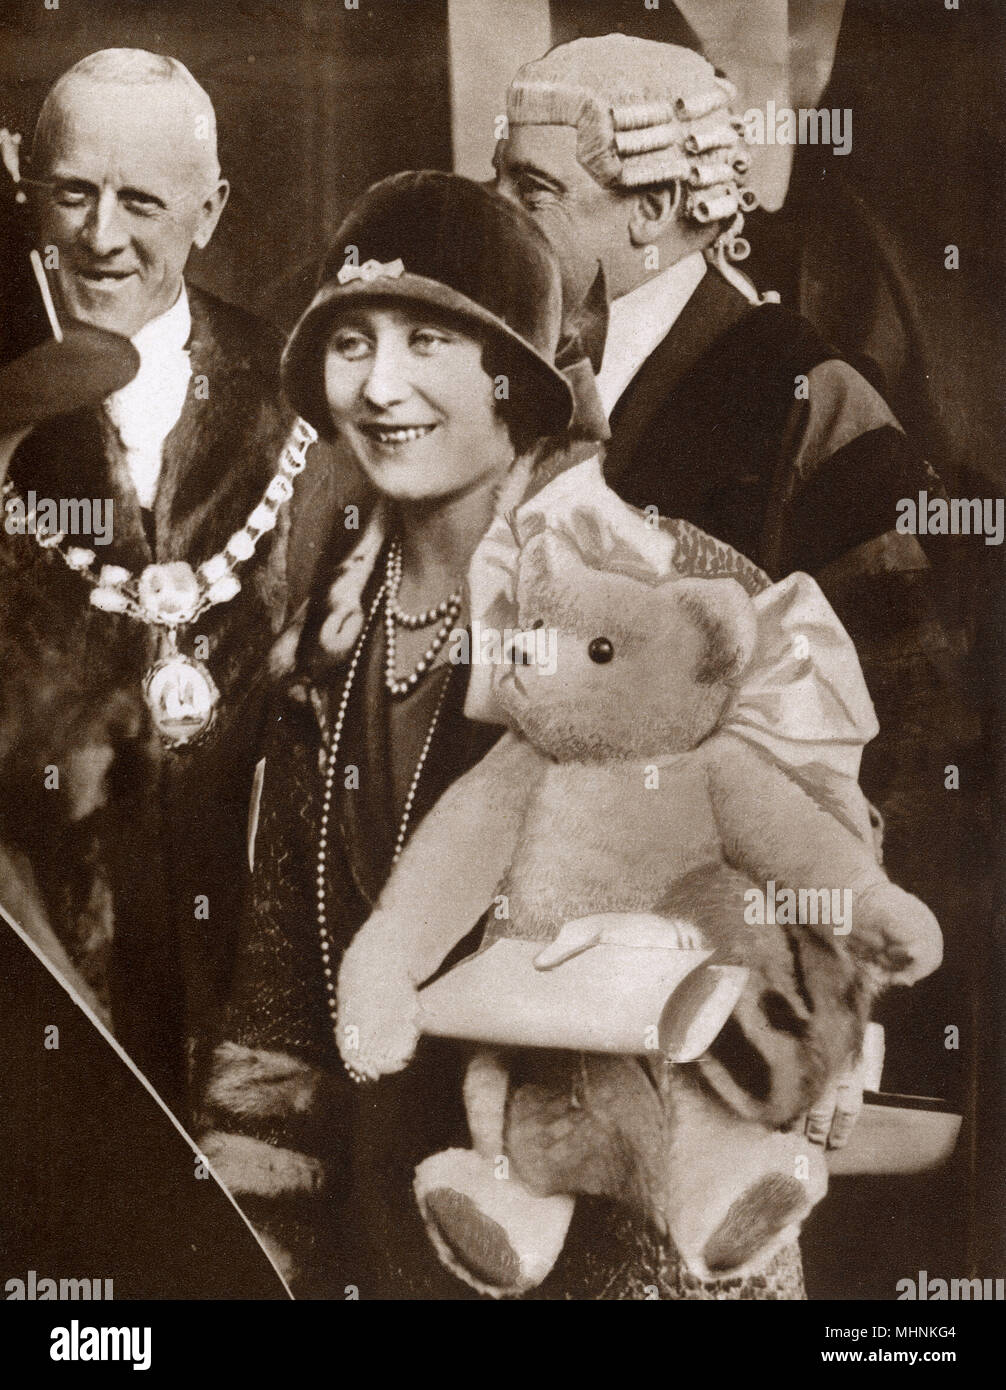 The Duchess of York (1900-2002) (later Elizabeth, the Queen Mother) given a large teddy bear for the infant Princess Elizabeth (the future Queen Elizabeth II) by the small children from the Dr. Barnardo's Home on the occasion of the presentation of a charter granting borough status to Ilford - 21st October, 1926.     Date: 1926 - Stock Image